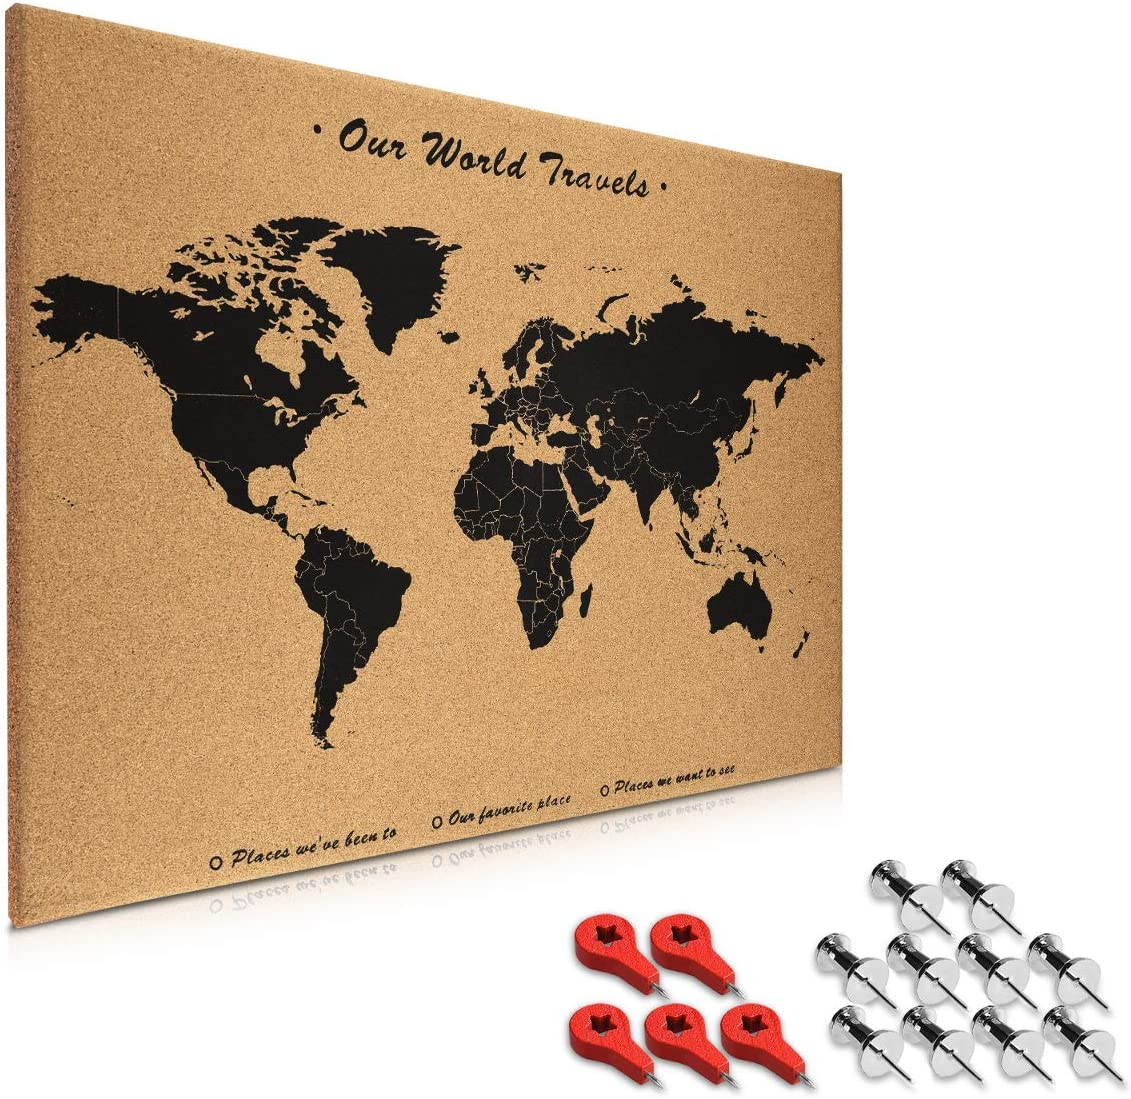 Navaris Cork Board World Map - 20 x 28 in Bulletin Memo Corkboard in World Map Design with 15x Push Pins for Kitchen, Classroom, Home Office, Bedroom